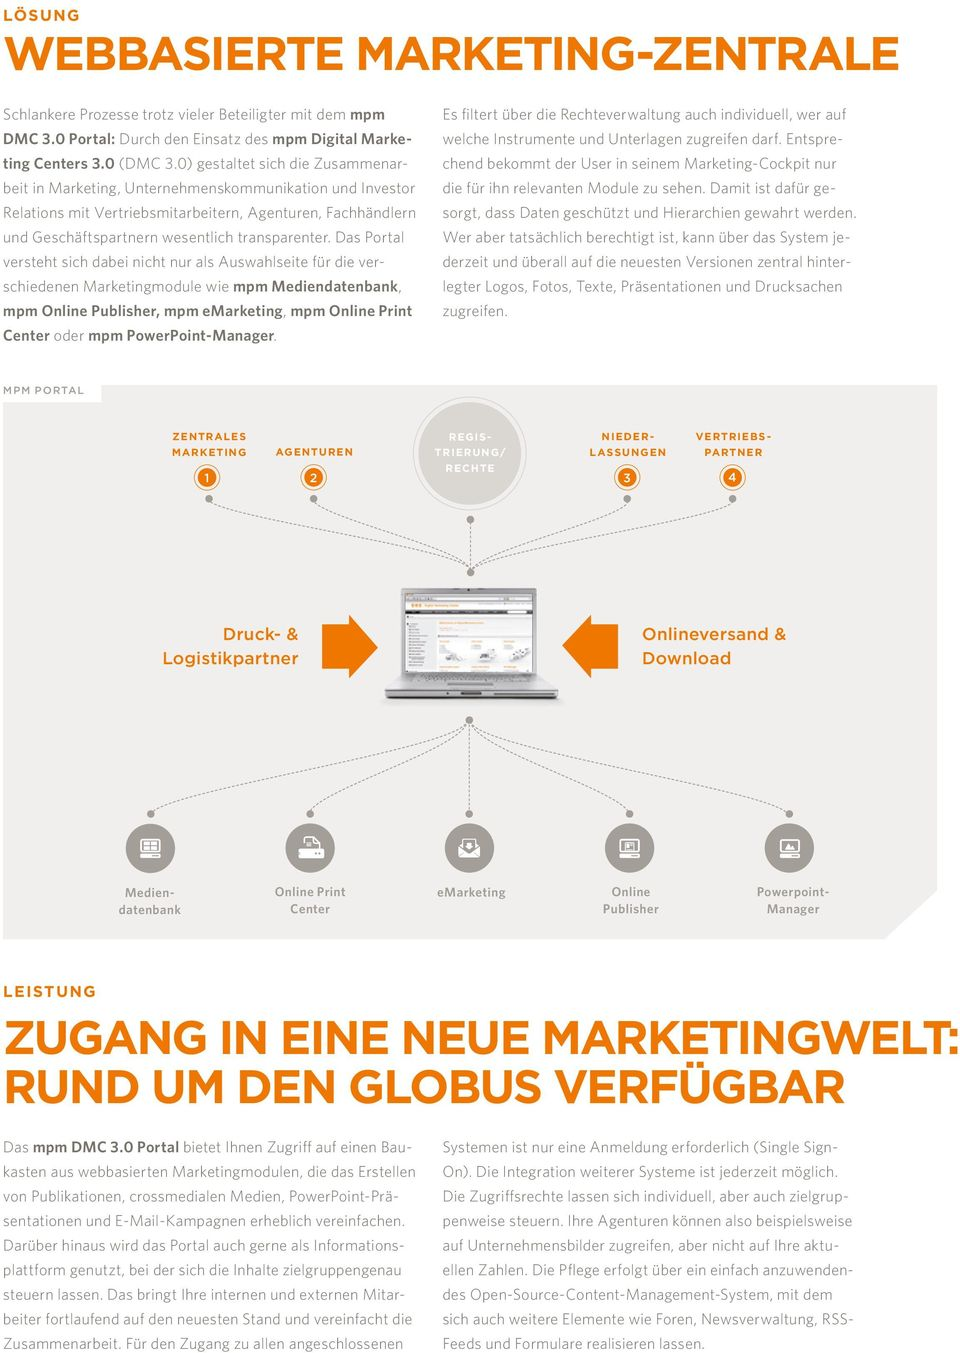 Das Portal versteht sich dabei nicht nur als Auswahlseite für die verschiedenen Marketingmodule wie mpm Mediendatenbank, mpm Online Publisher, mpm emarketing, mpm Online Print Center oder mpm